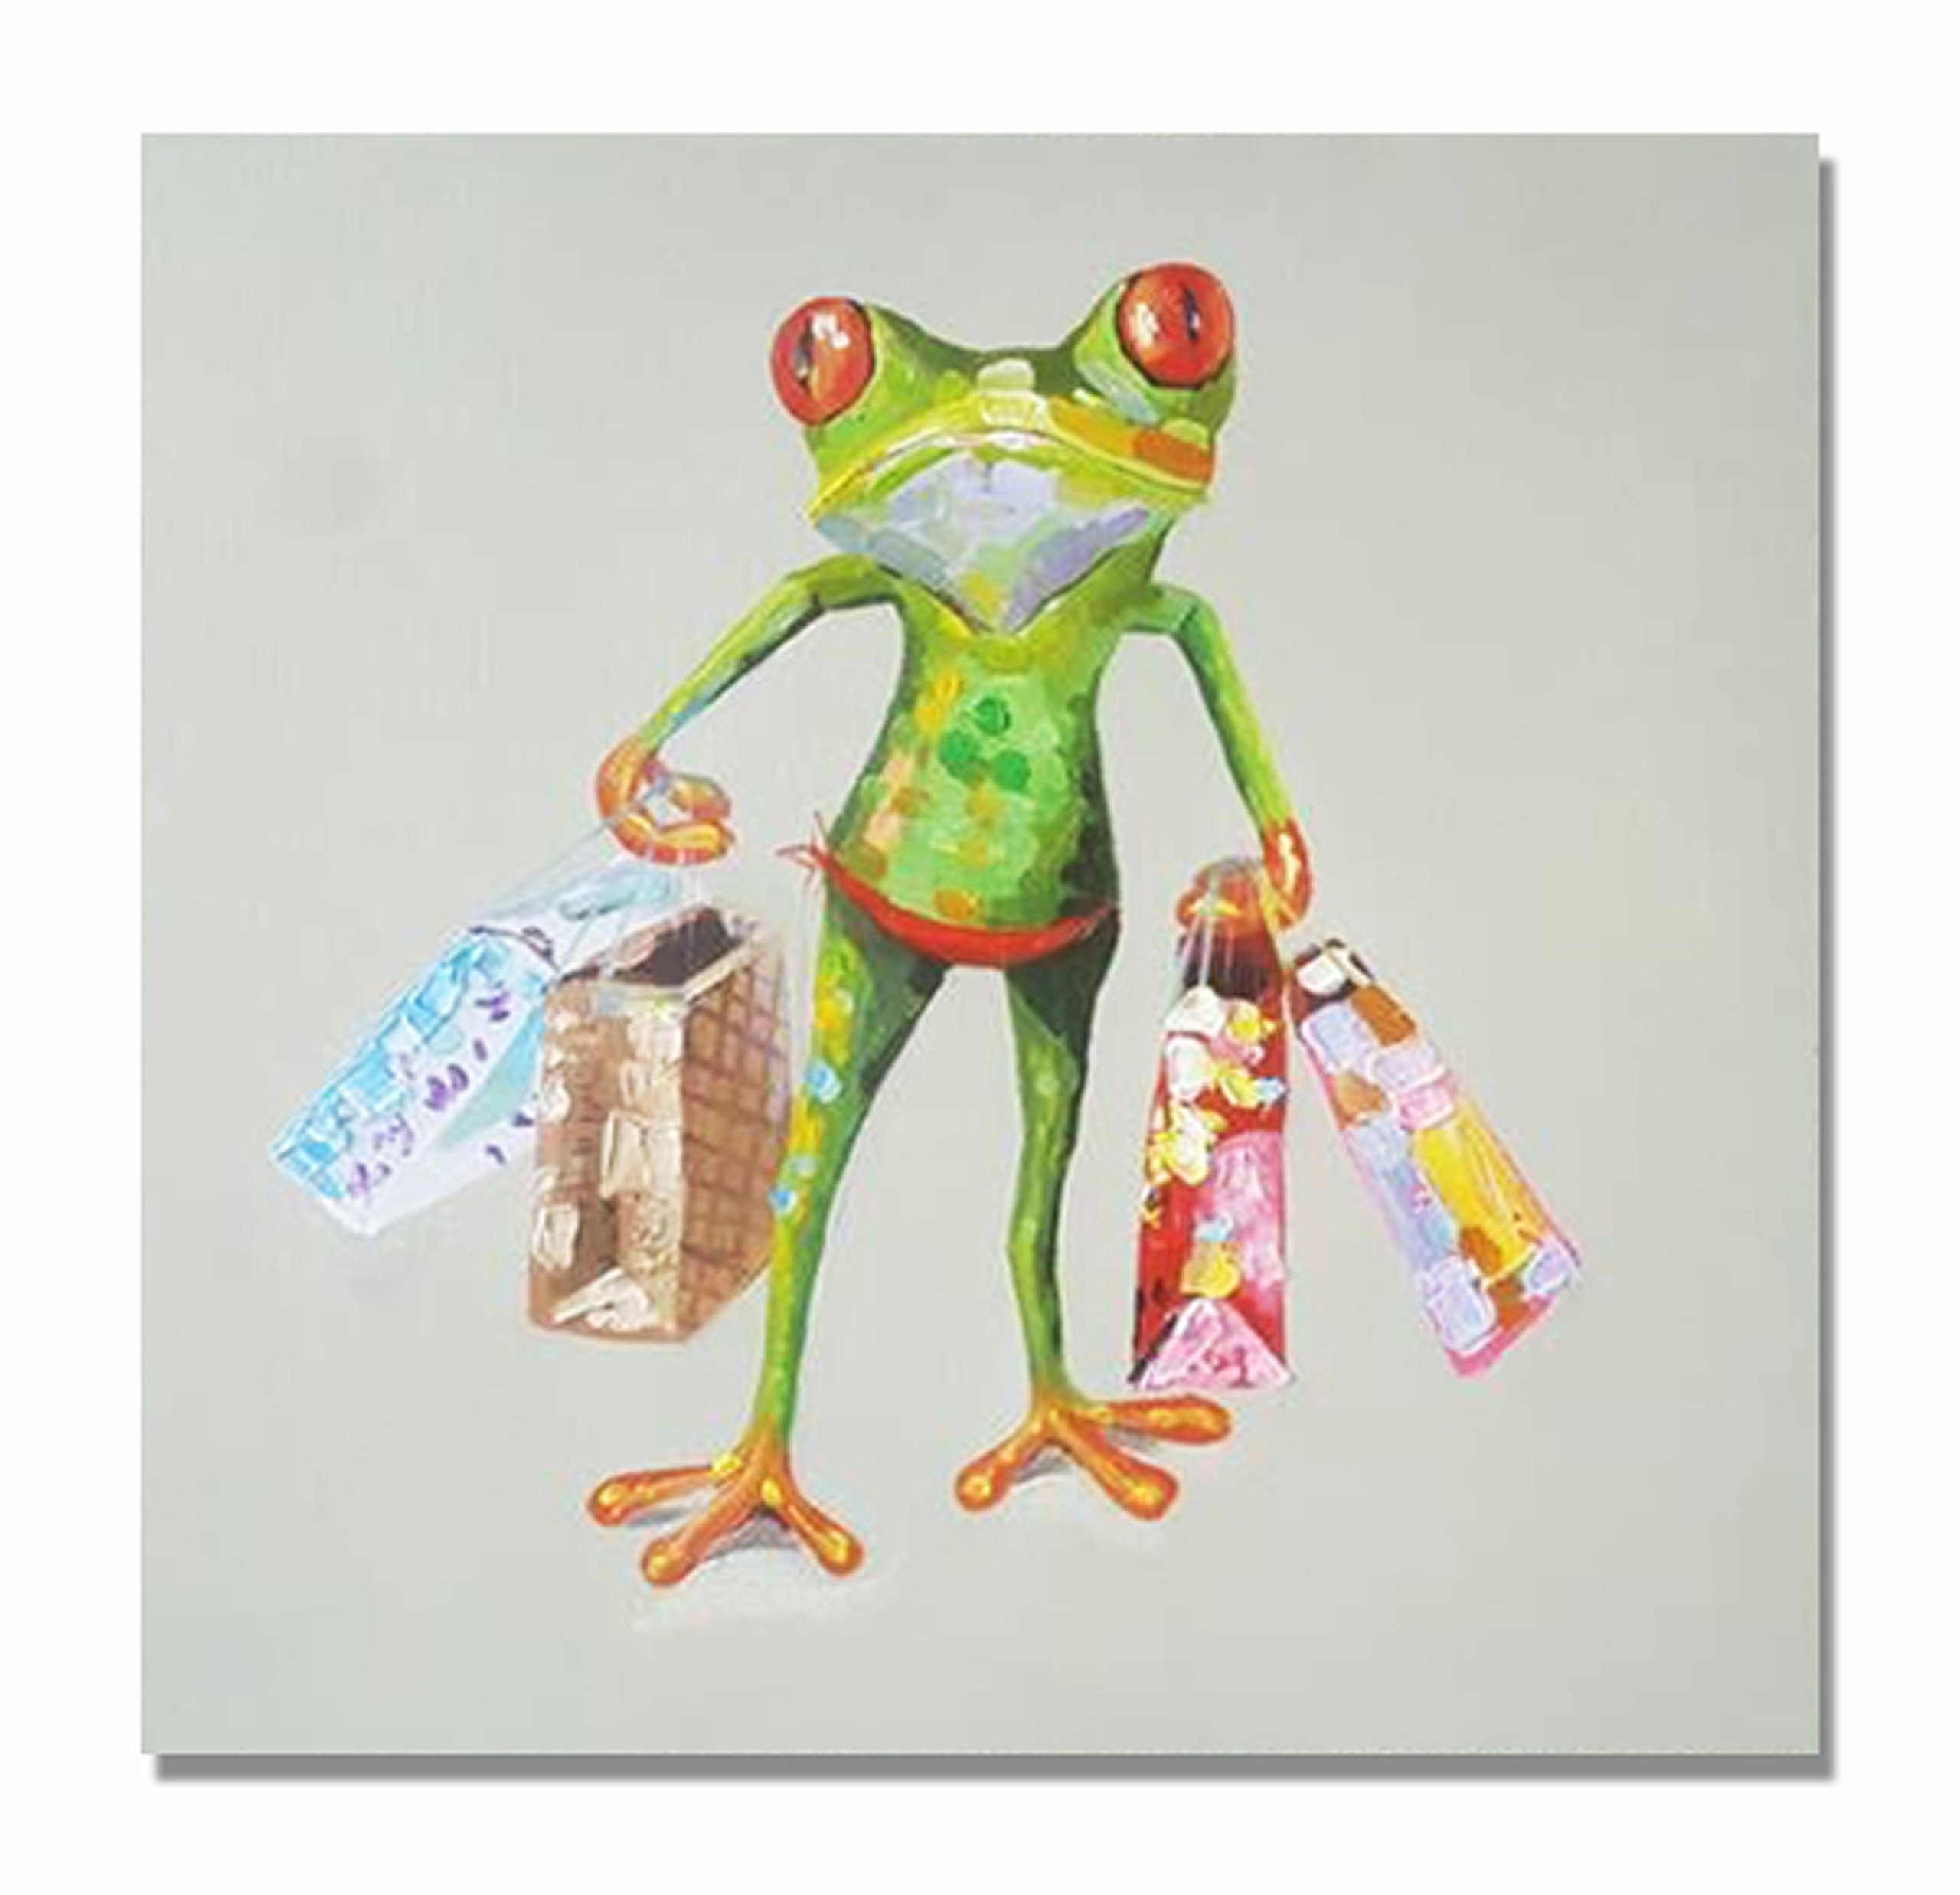 Frog Paintings 100% Hand Painted Cute Animal Canvas Oil Painting Stretched and Framed Ready to Hang Living Room Bedroom Office Bathroom 24'' x24''